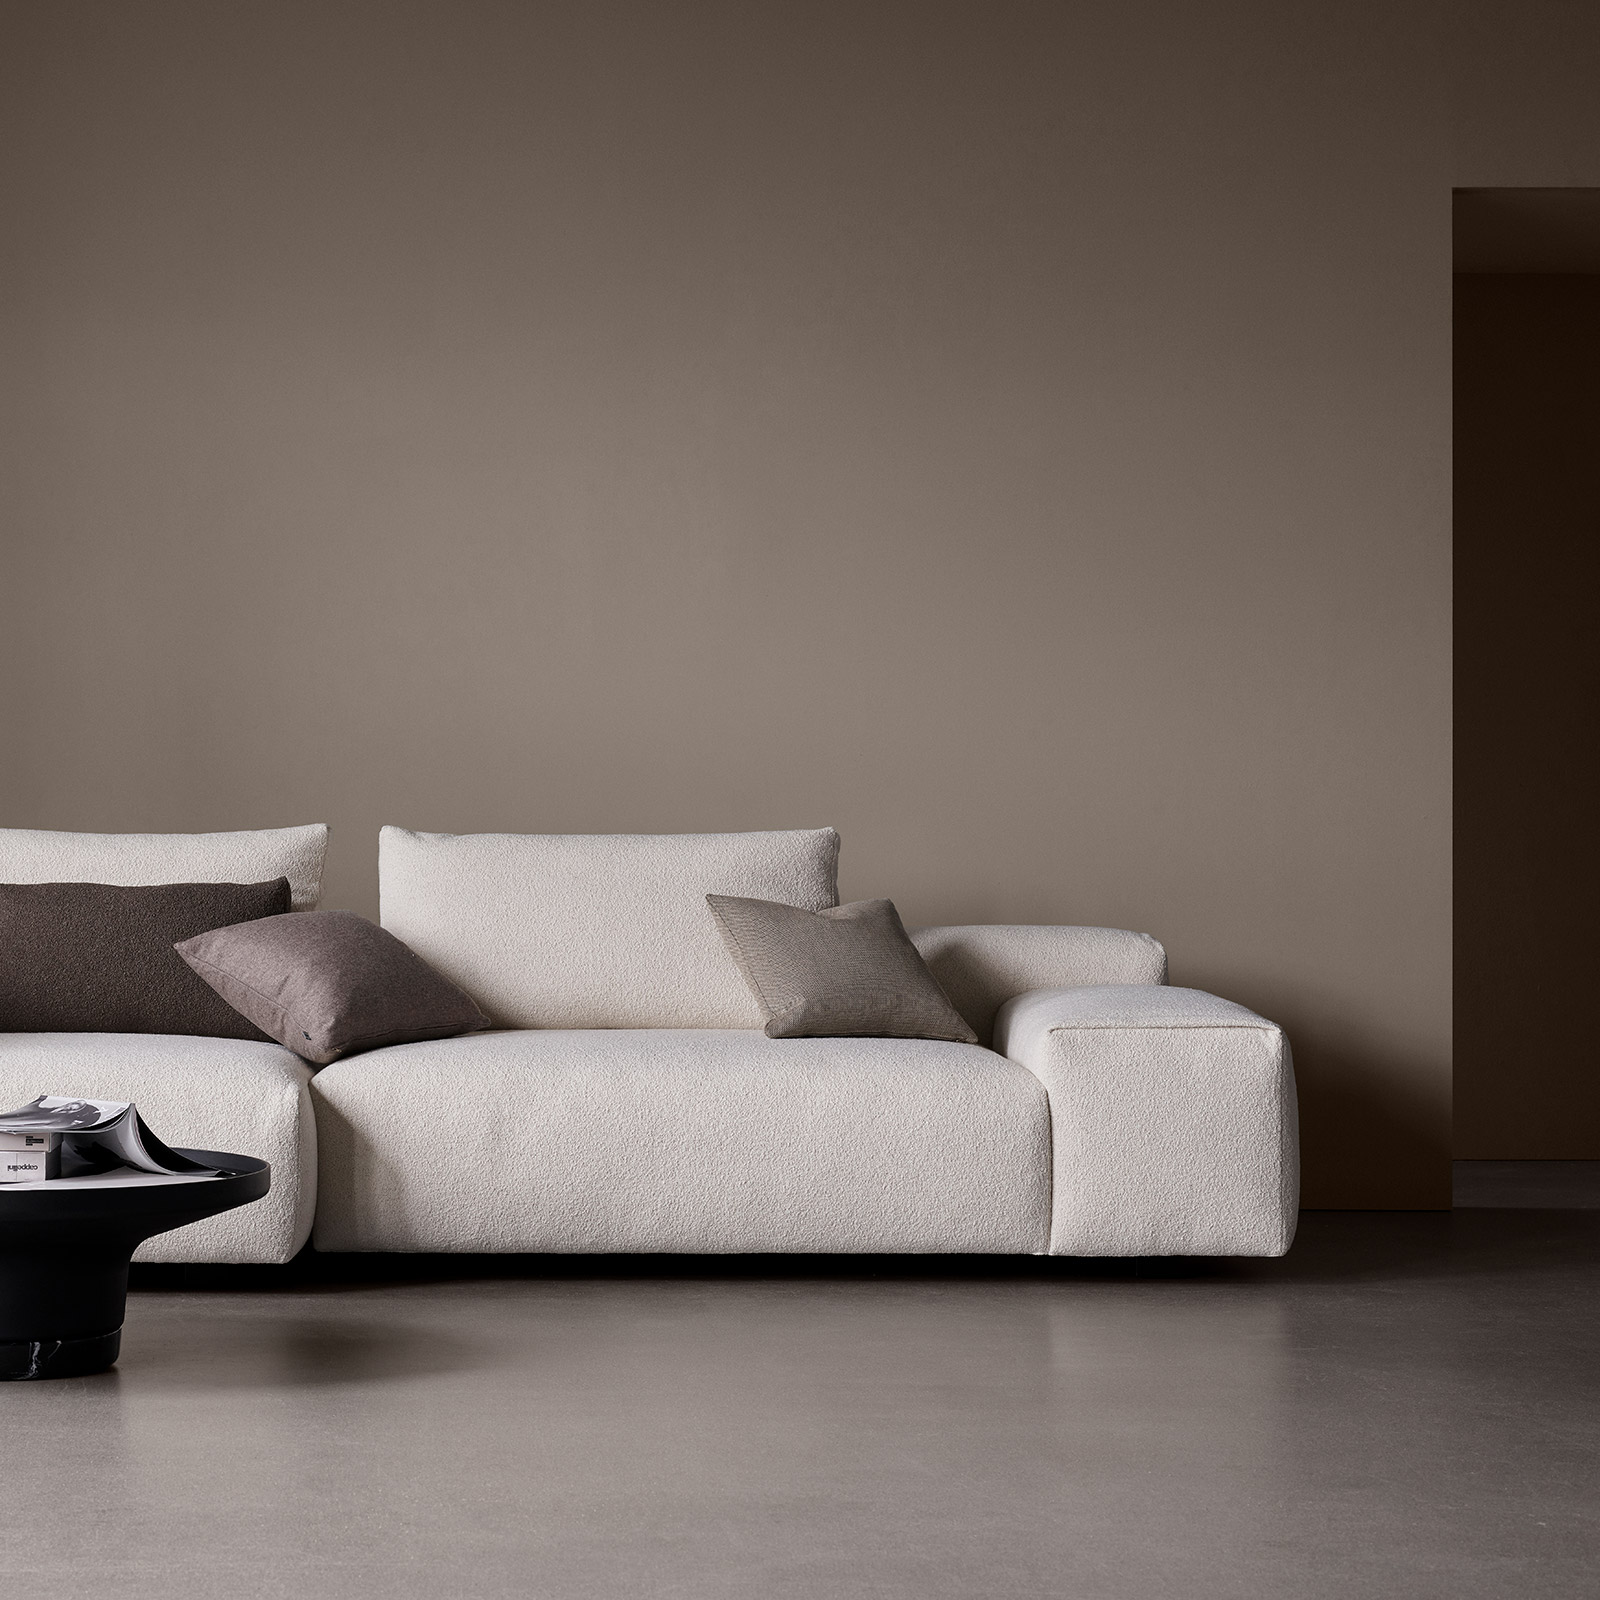 Raft sofa by Wendelbo in cream bouclé fabric